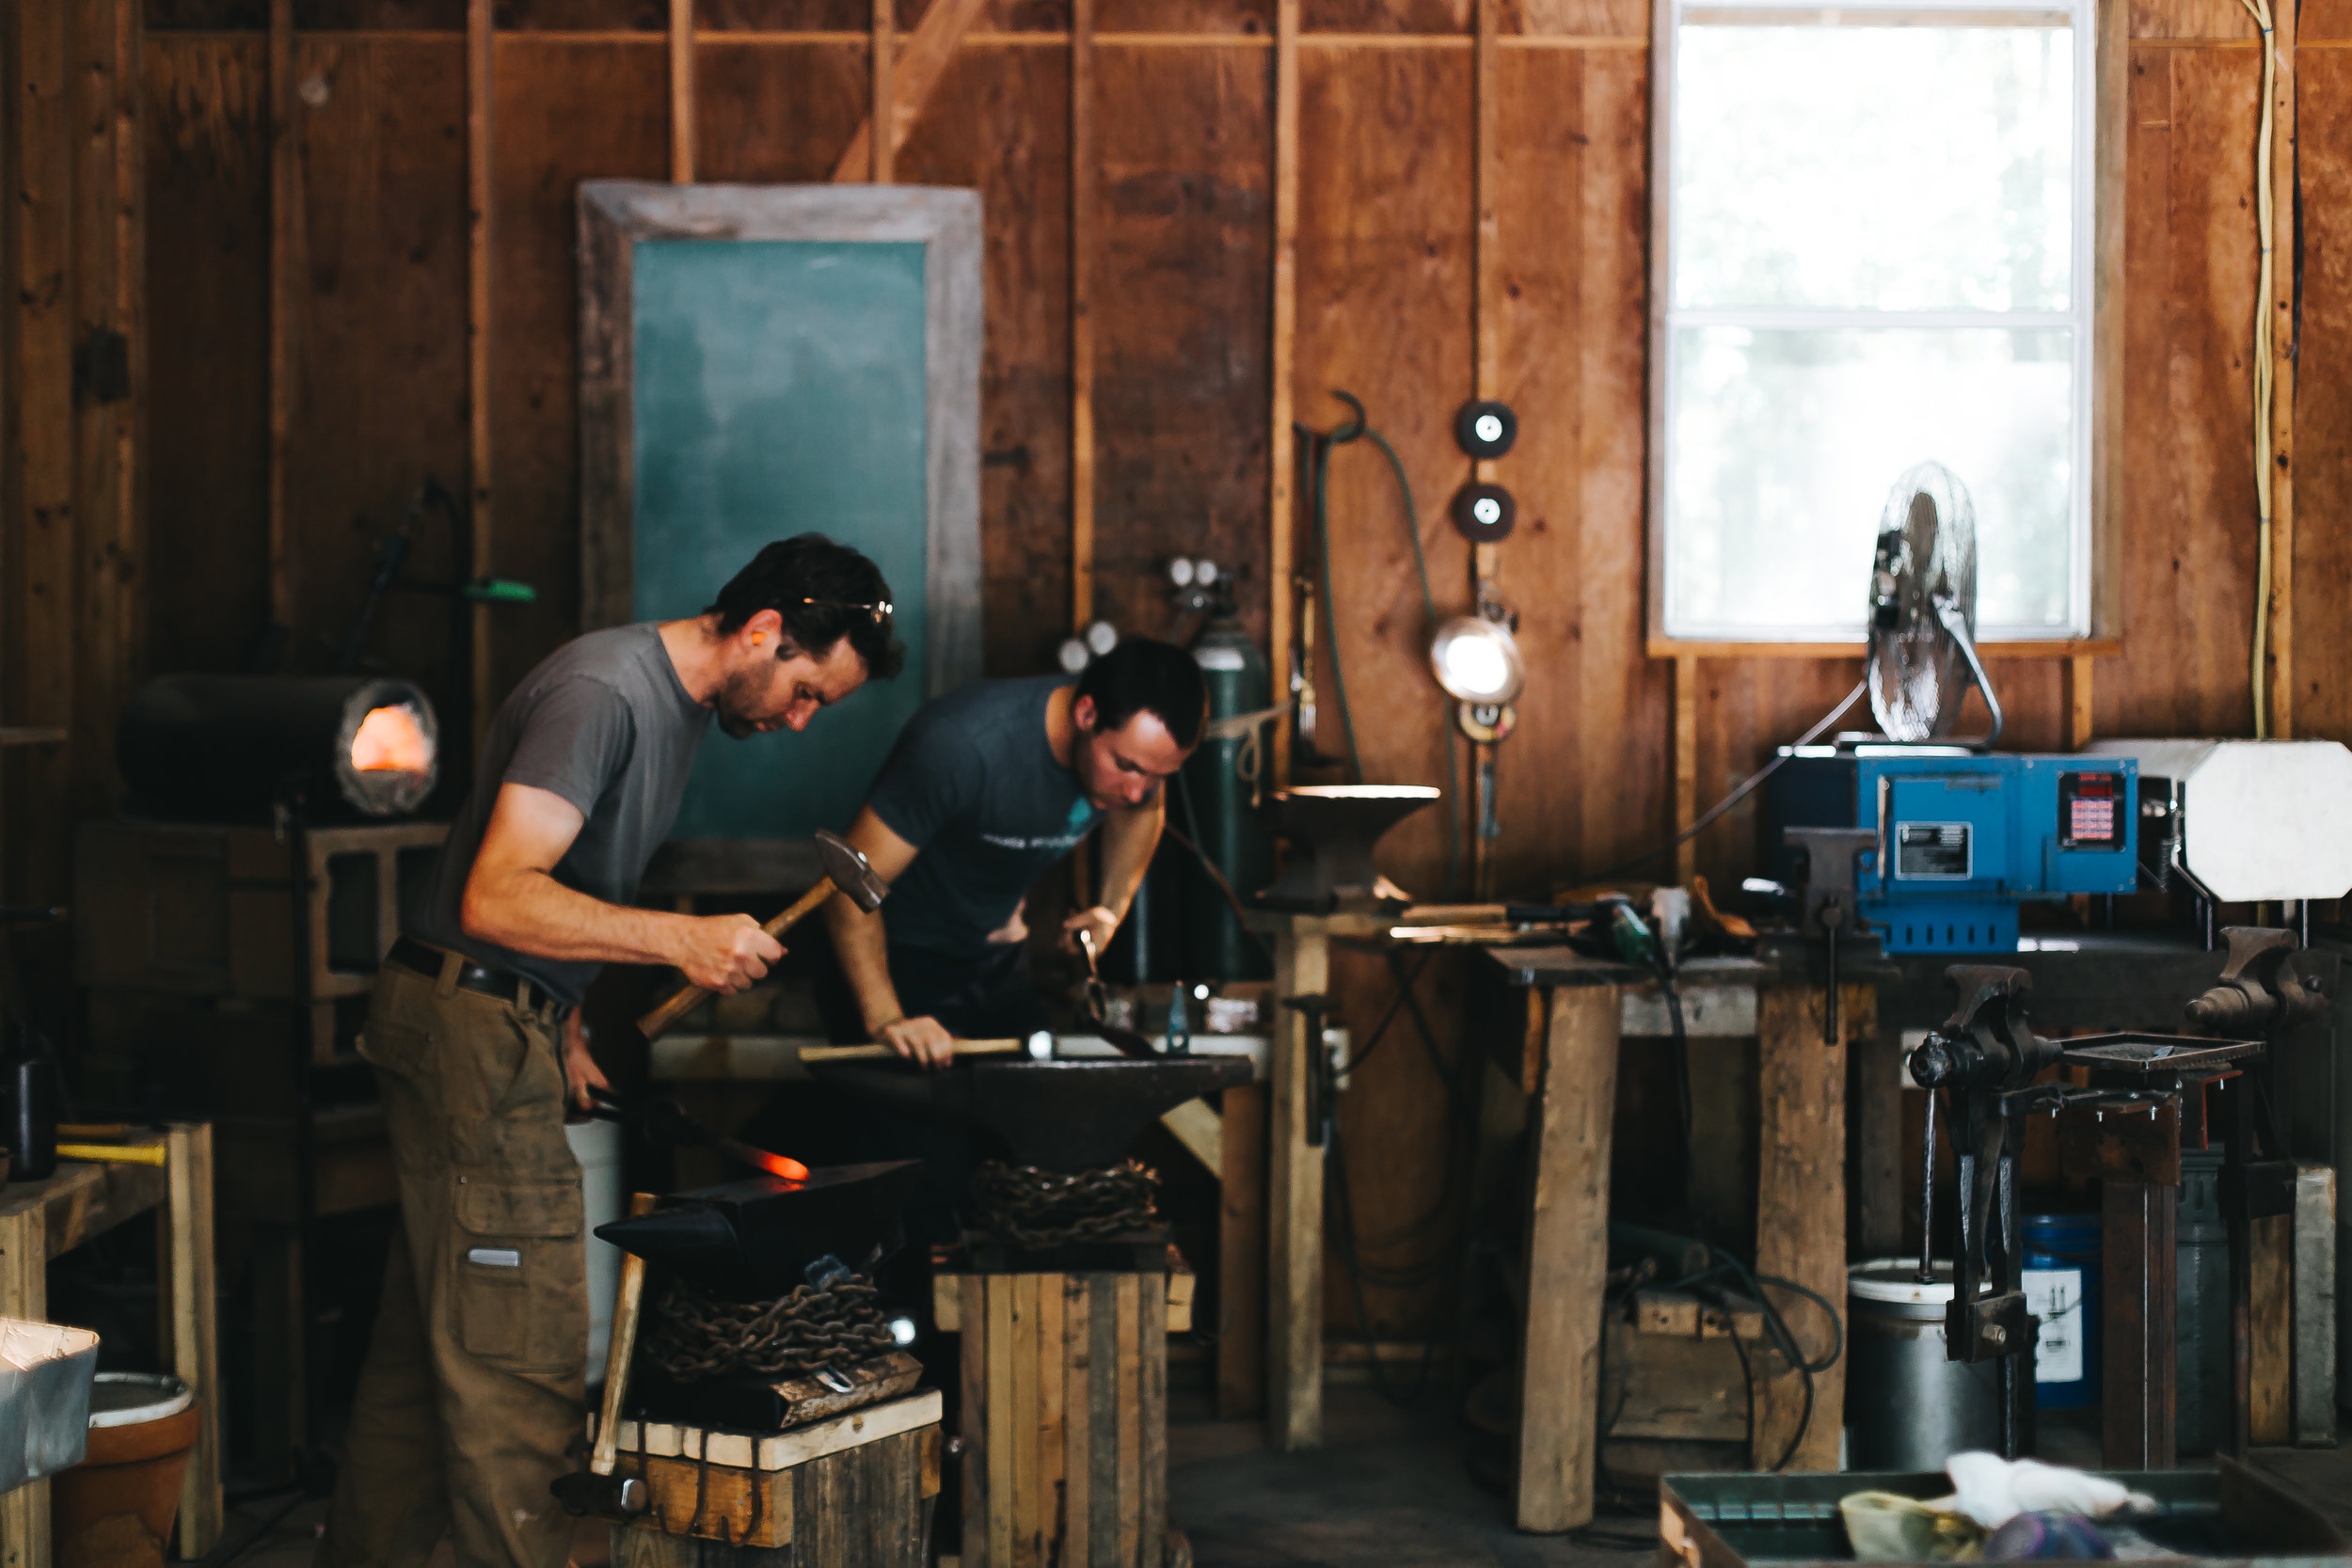 David Van Wyk (left) and Luke Snyder working in the shop. Photo by Paige French.